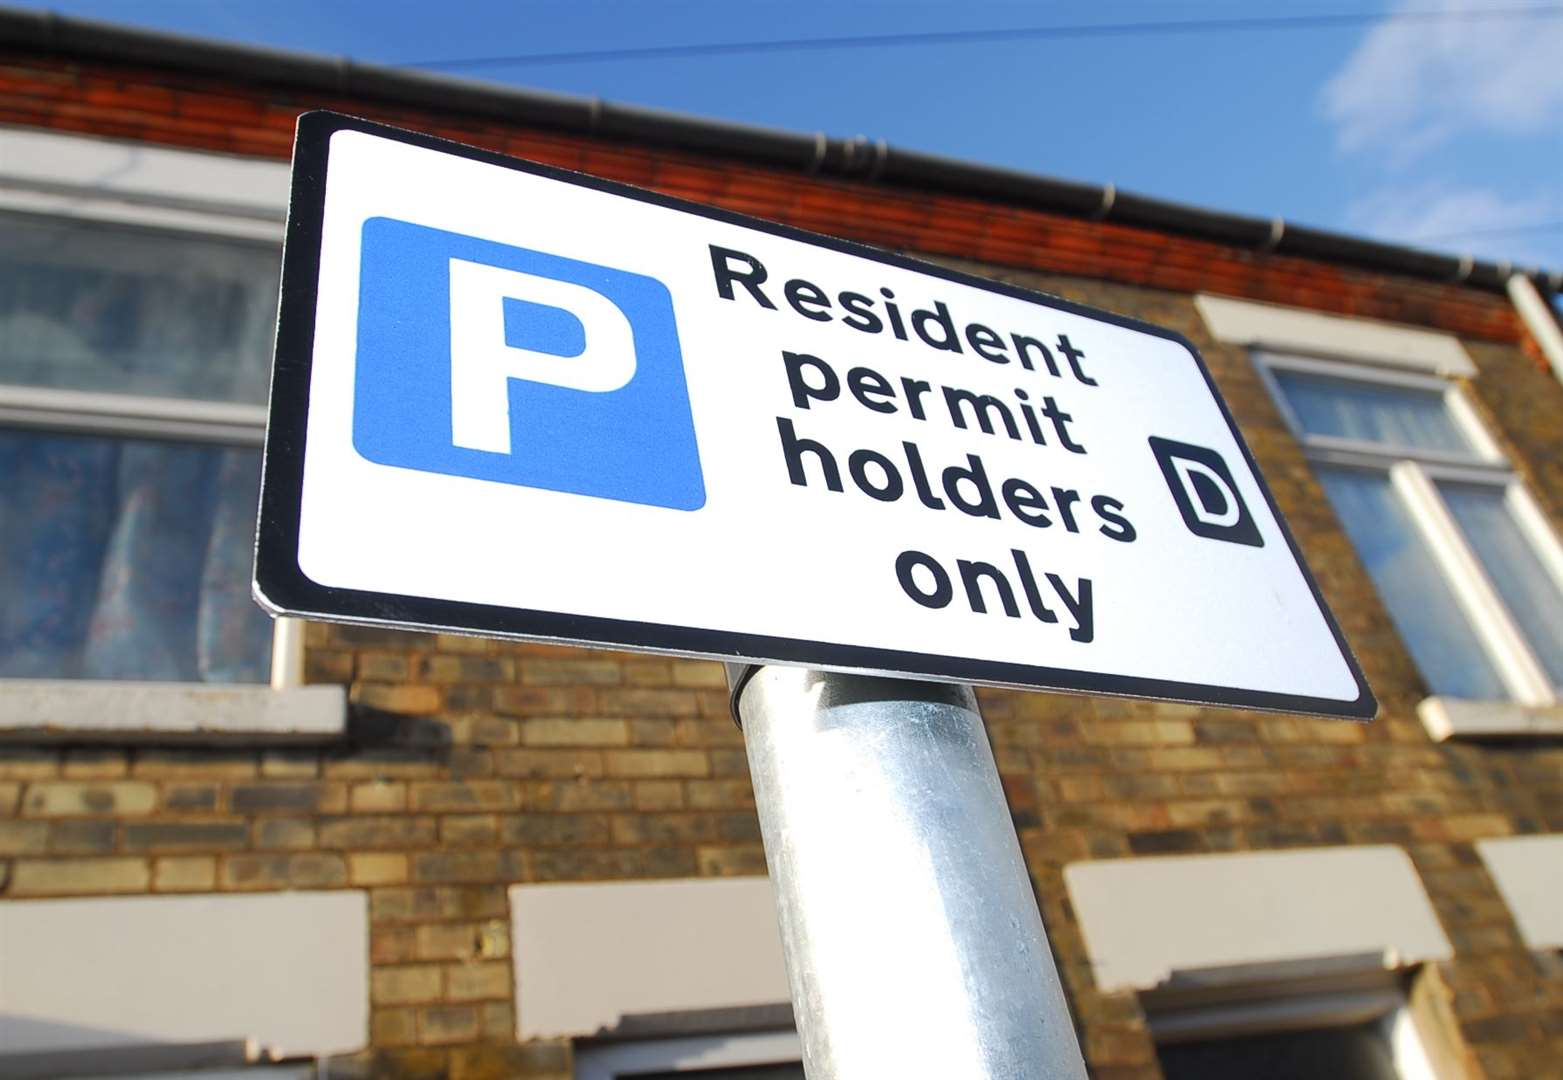 Parking permit costs could triple